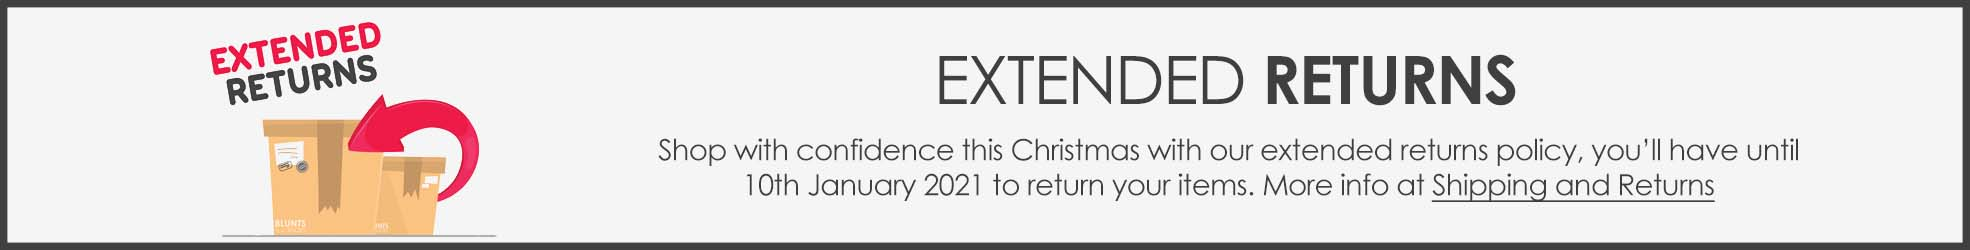 Extended Returns, shop with confidence this Christmas with our extended returns policy, you'll have until the 10th January 2021 to return your items.